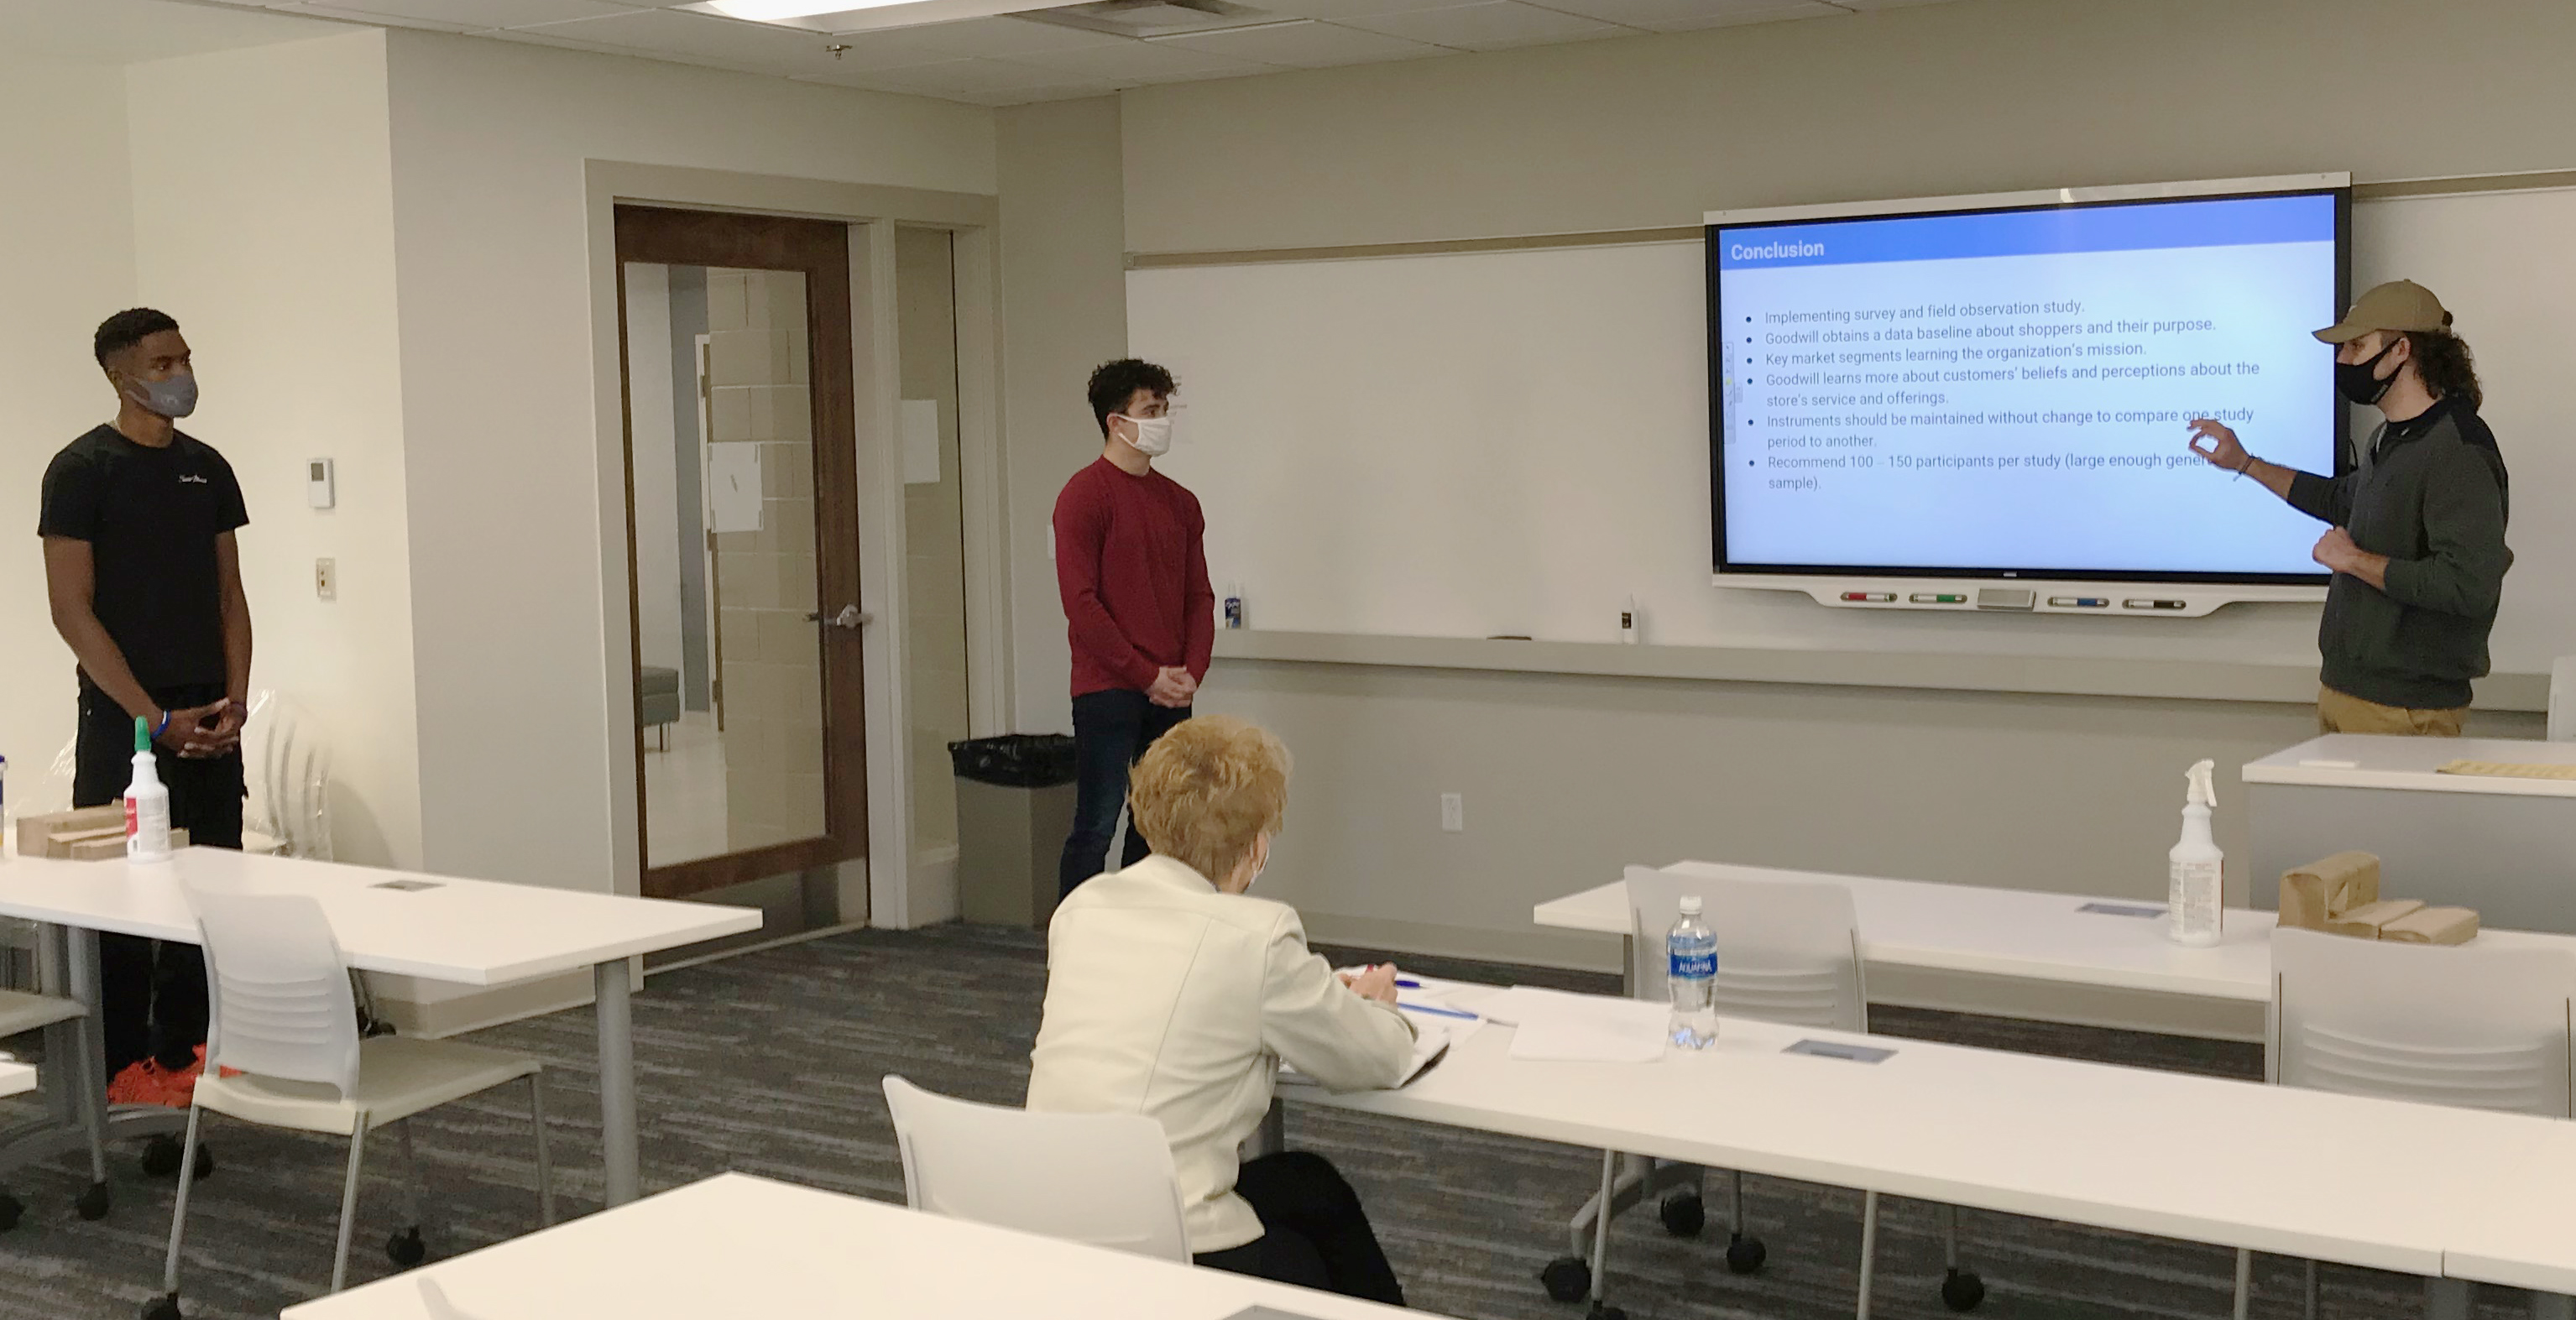 Tim Biakapia, Kade Tomlinson and Gavin Ogan present a consumer behavior proposal to Lenore Mason, Executive Director of Goodwill of Southern Ohio, Inc.